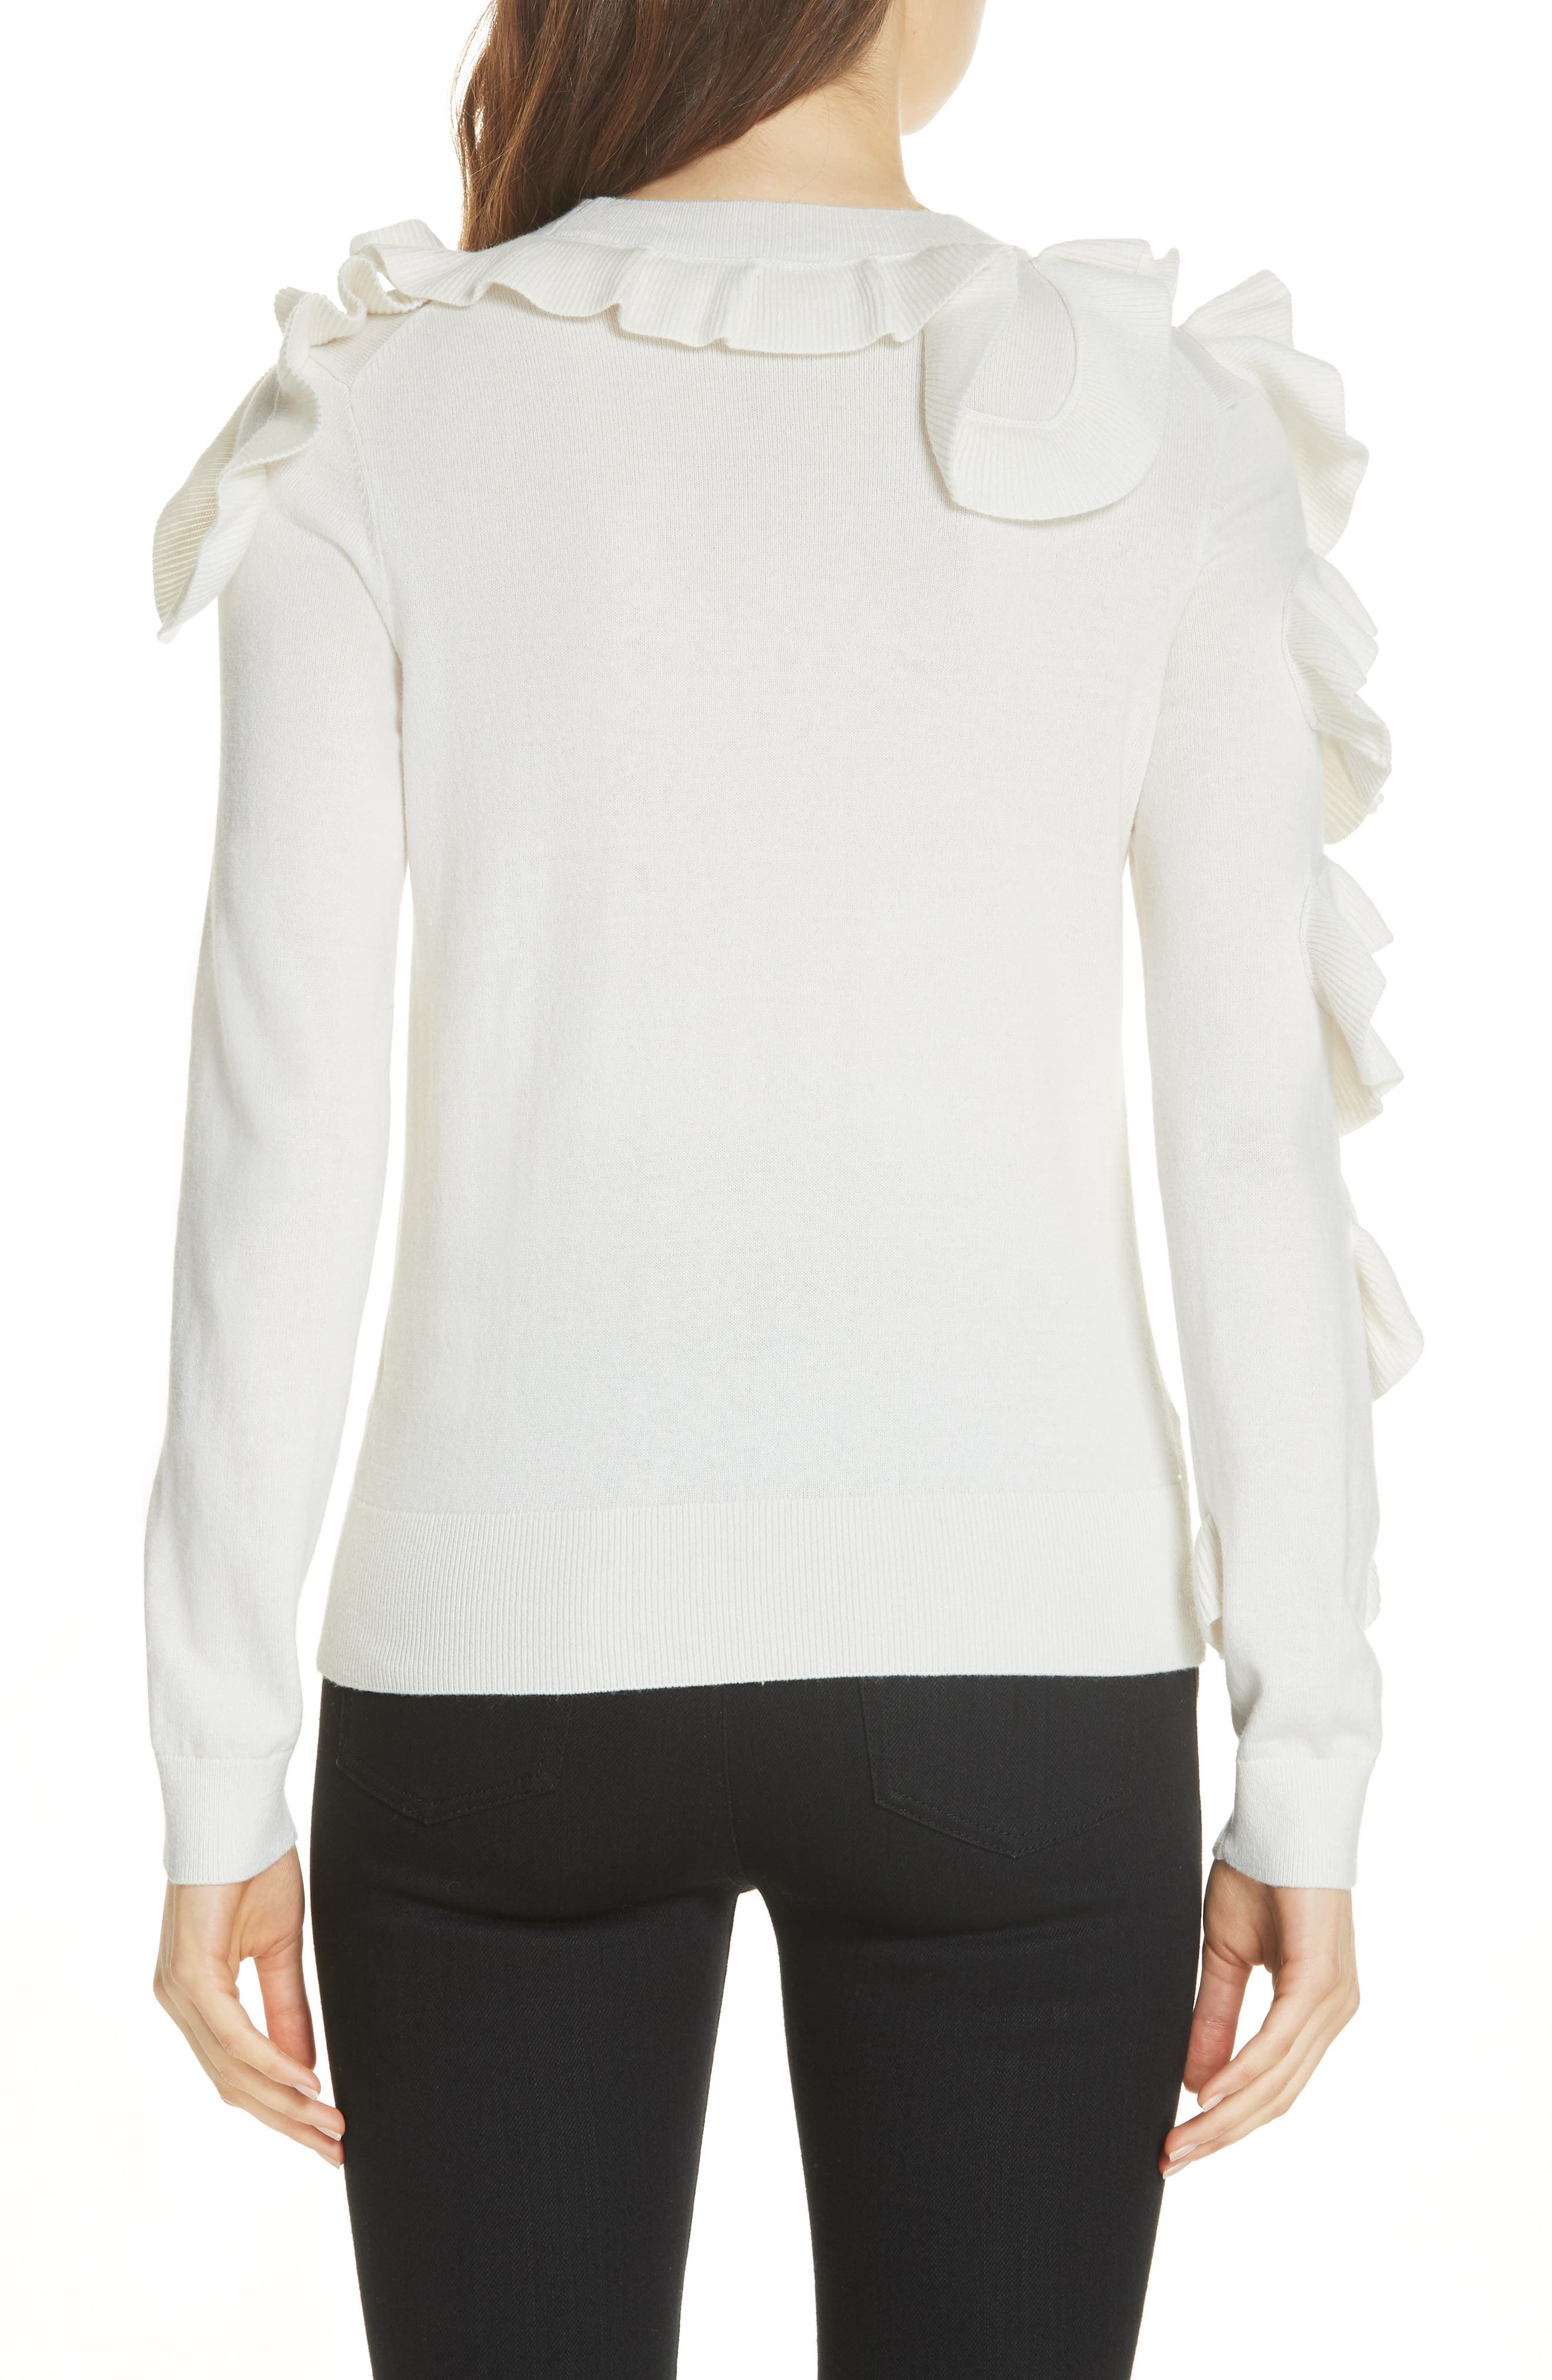 Pallege Frill Sleeve Wool Blend Sweater,                             Alternate thumbnail 2, color,                             905